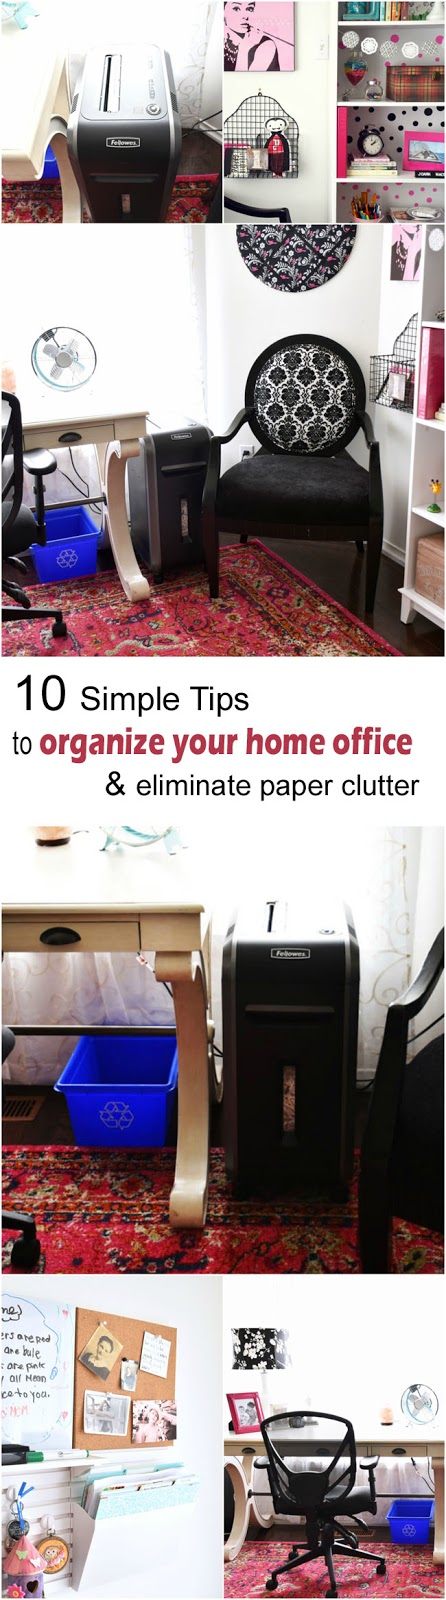 Paper piling up? Read these 10 simple tips to get your home office organized & eliminate paper clutter once and for all!